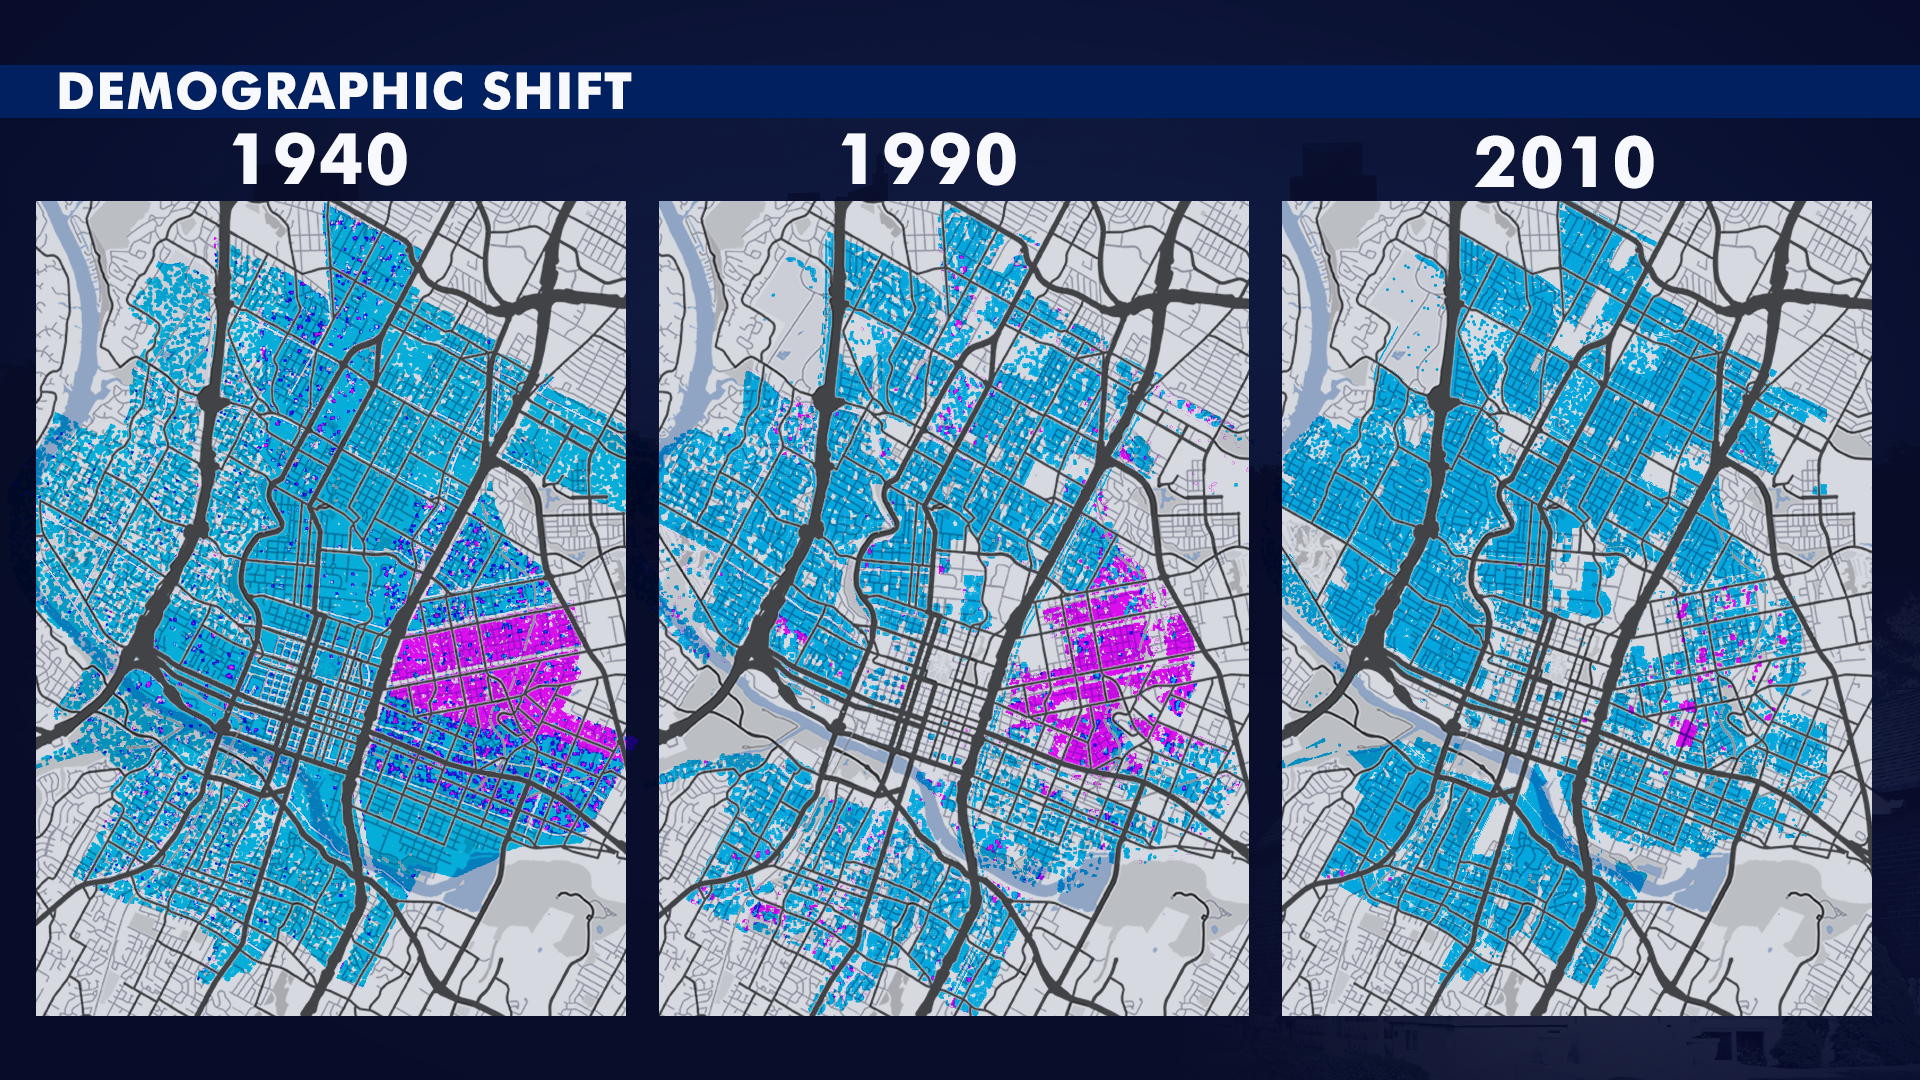 These maps provided by the City of Austin show a demographic shift in Austin. The purple dots represent the Black population. By 2010, the city says many Black Austinites left the city.